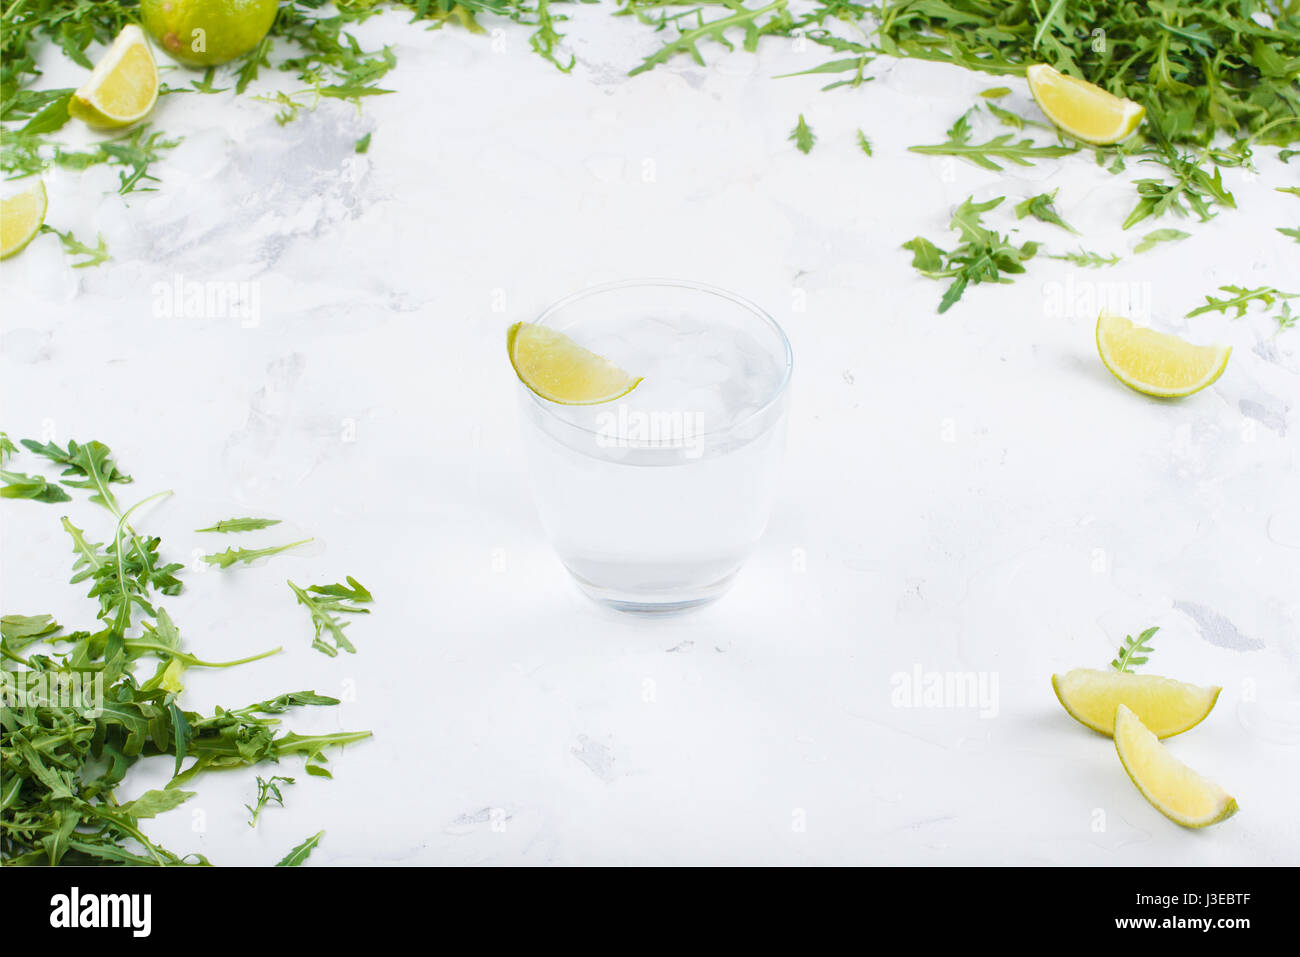 Fresh limes in the water on a white background. Greens and slices of lime in the background. A glass of water with - Stock Image